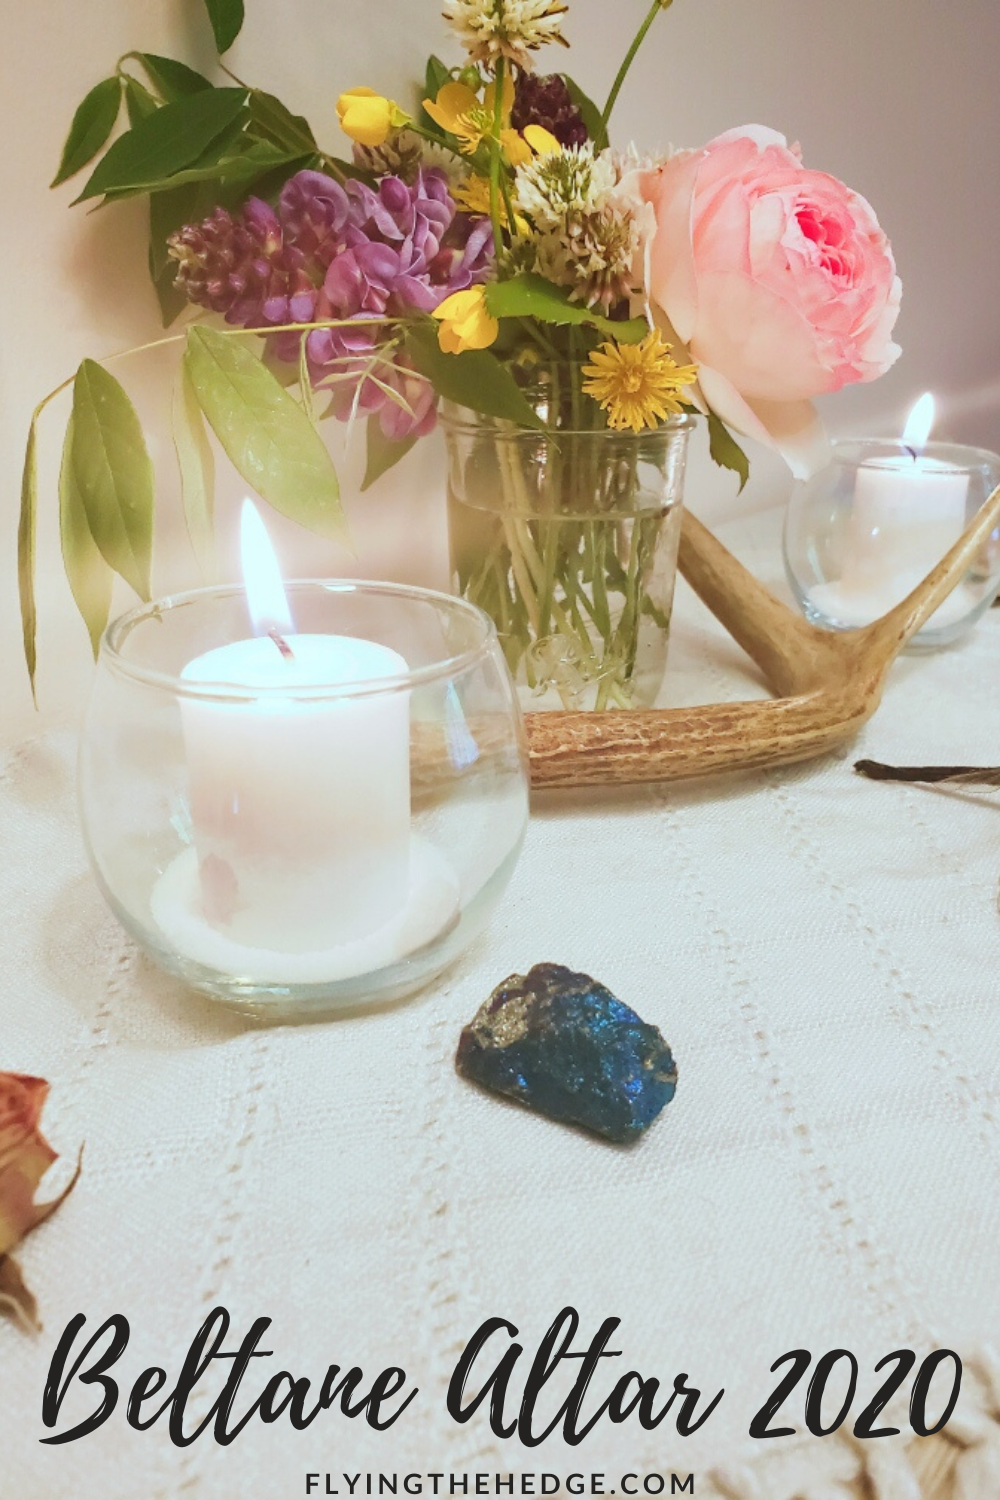 Beltane, altar, witch, witchcraft, May Day, witchy